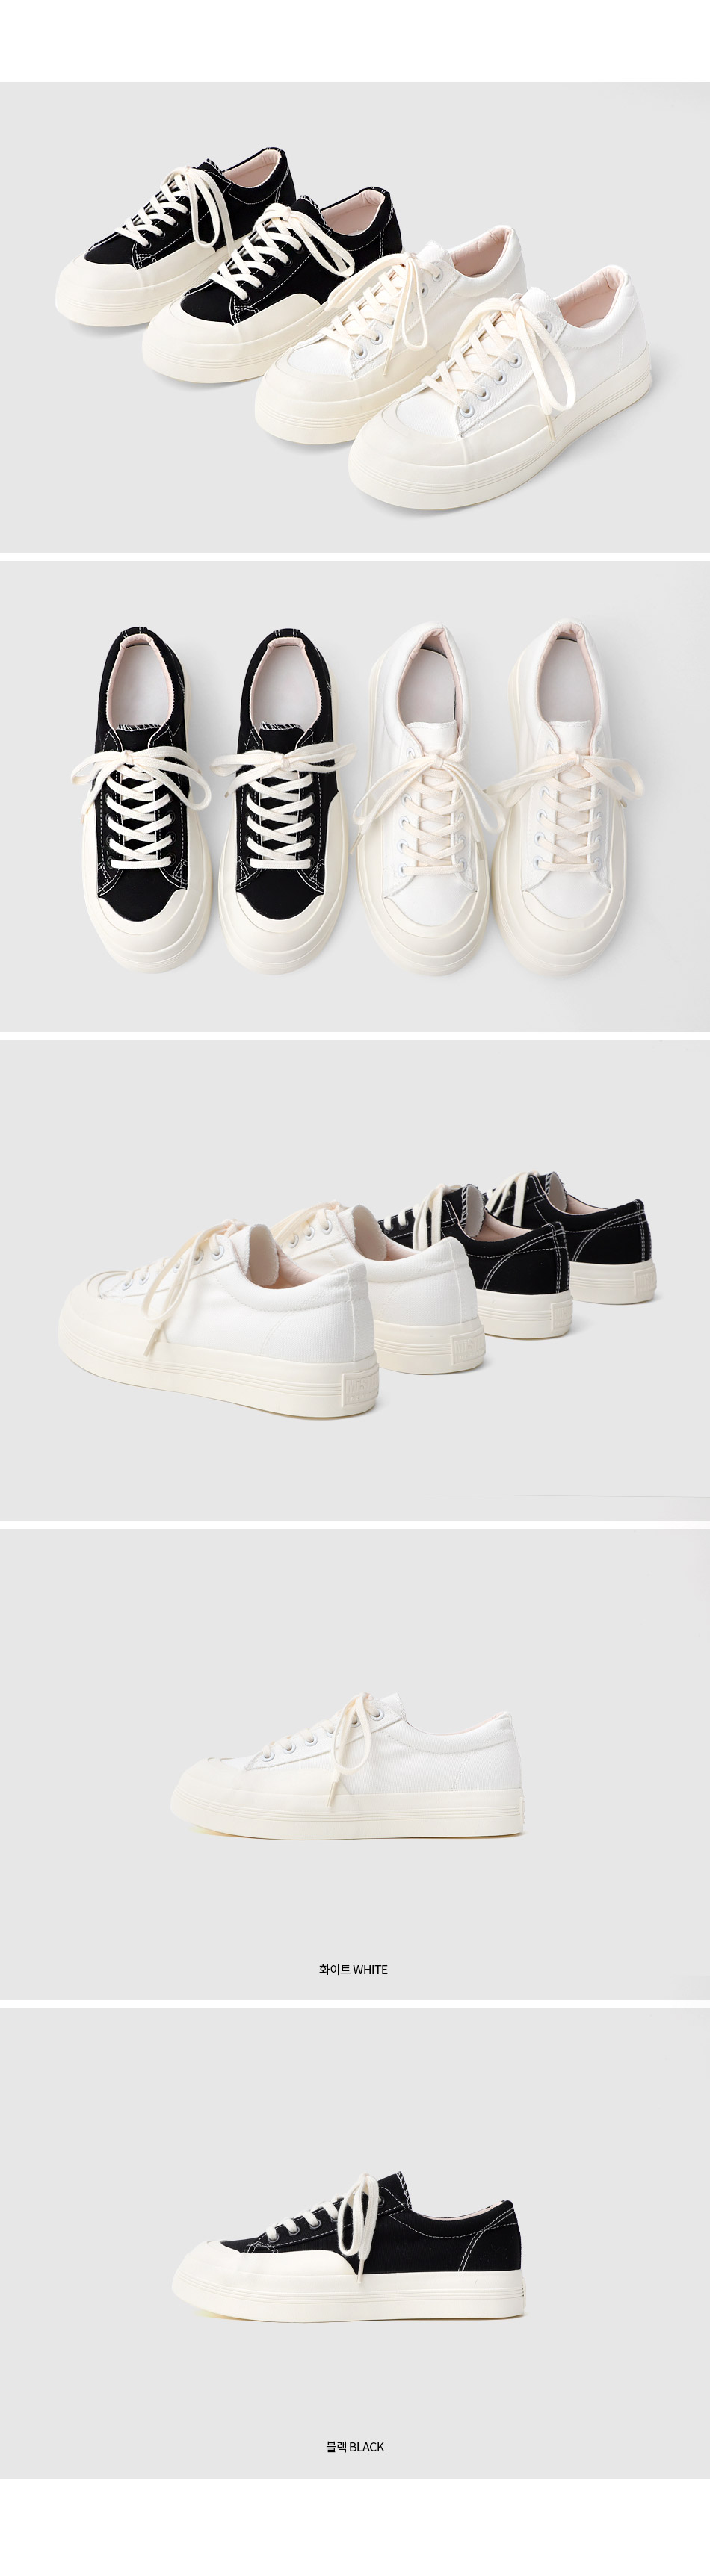 Issu Daily Lace-up Socks Heel Sneakers 10907